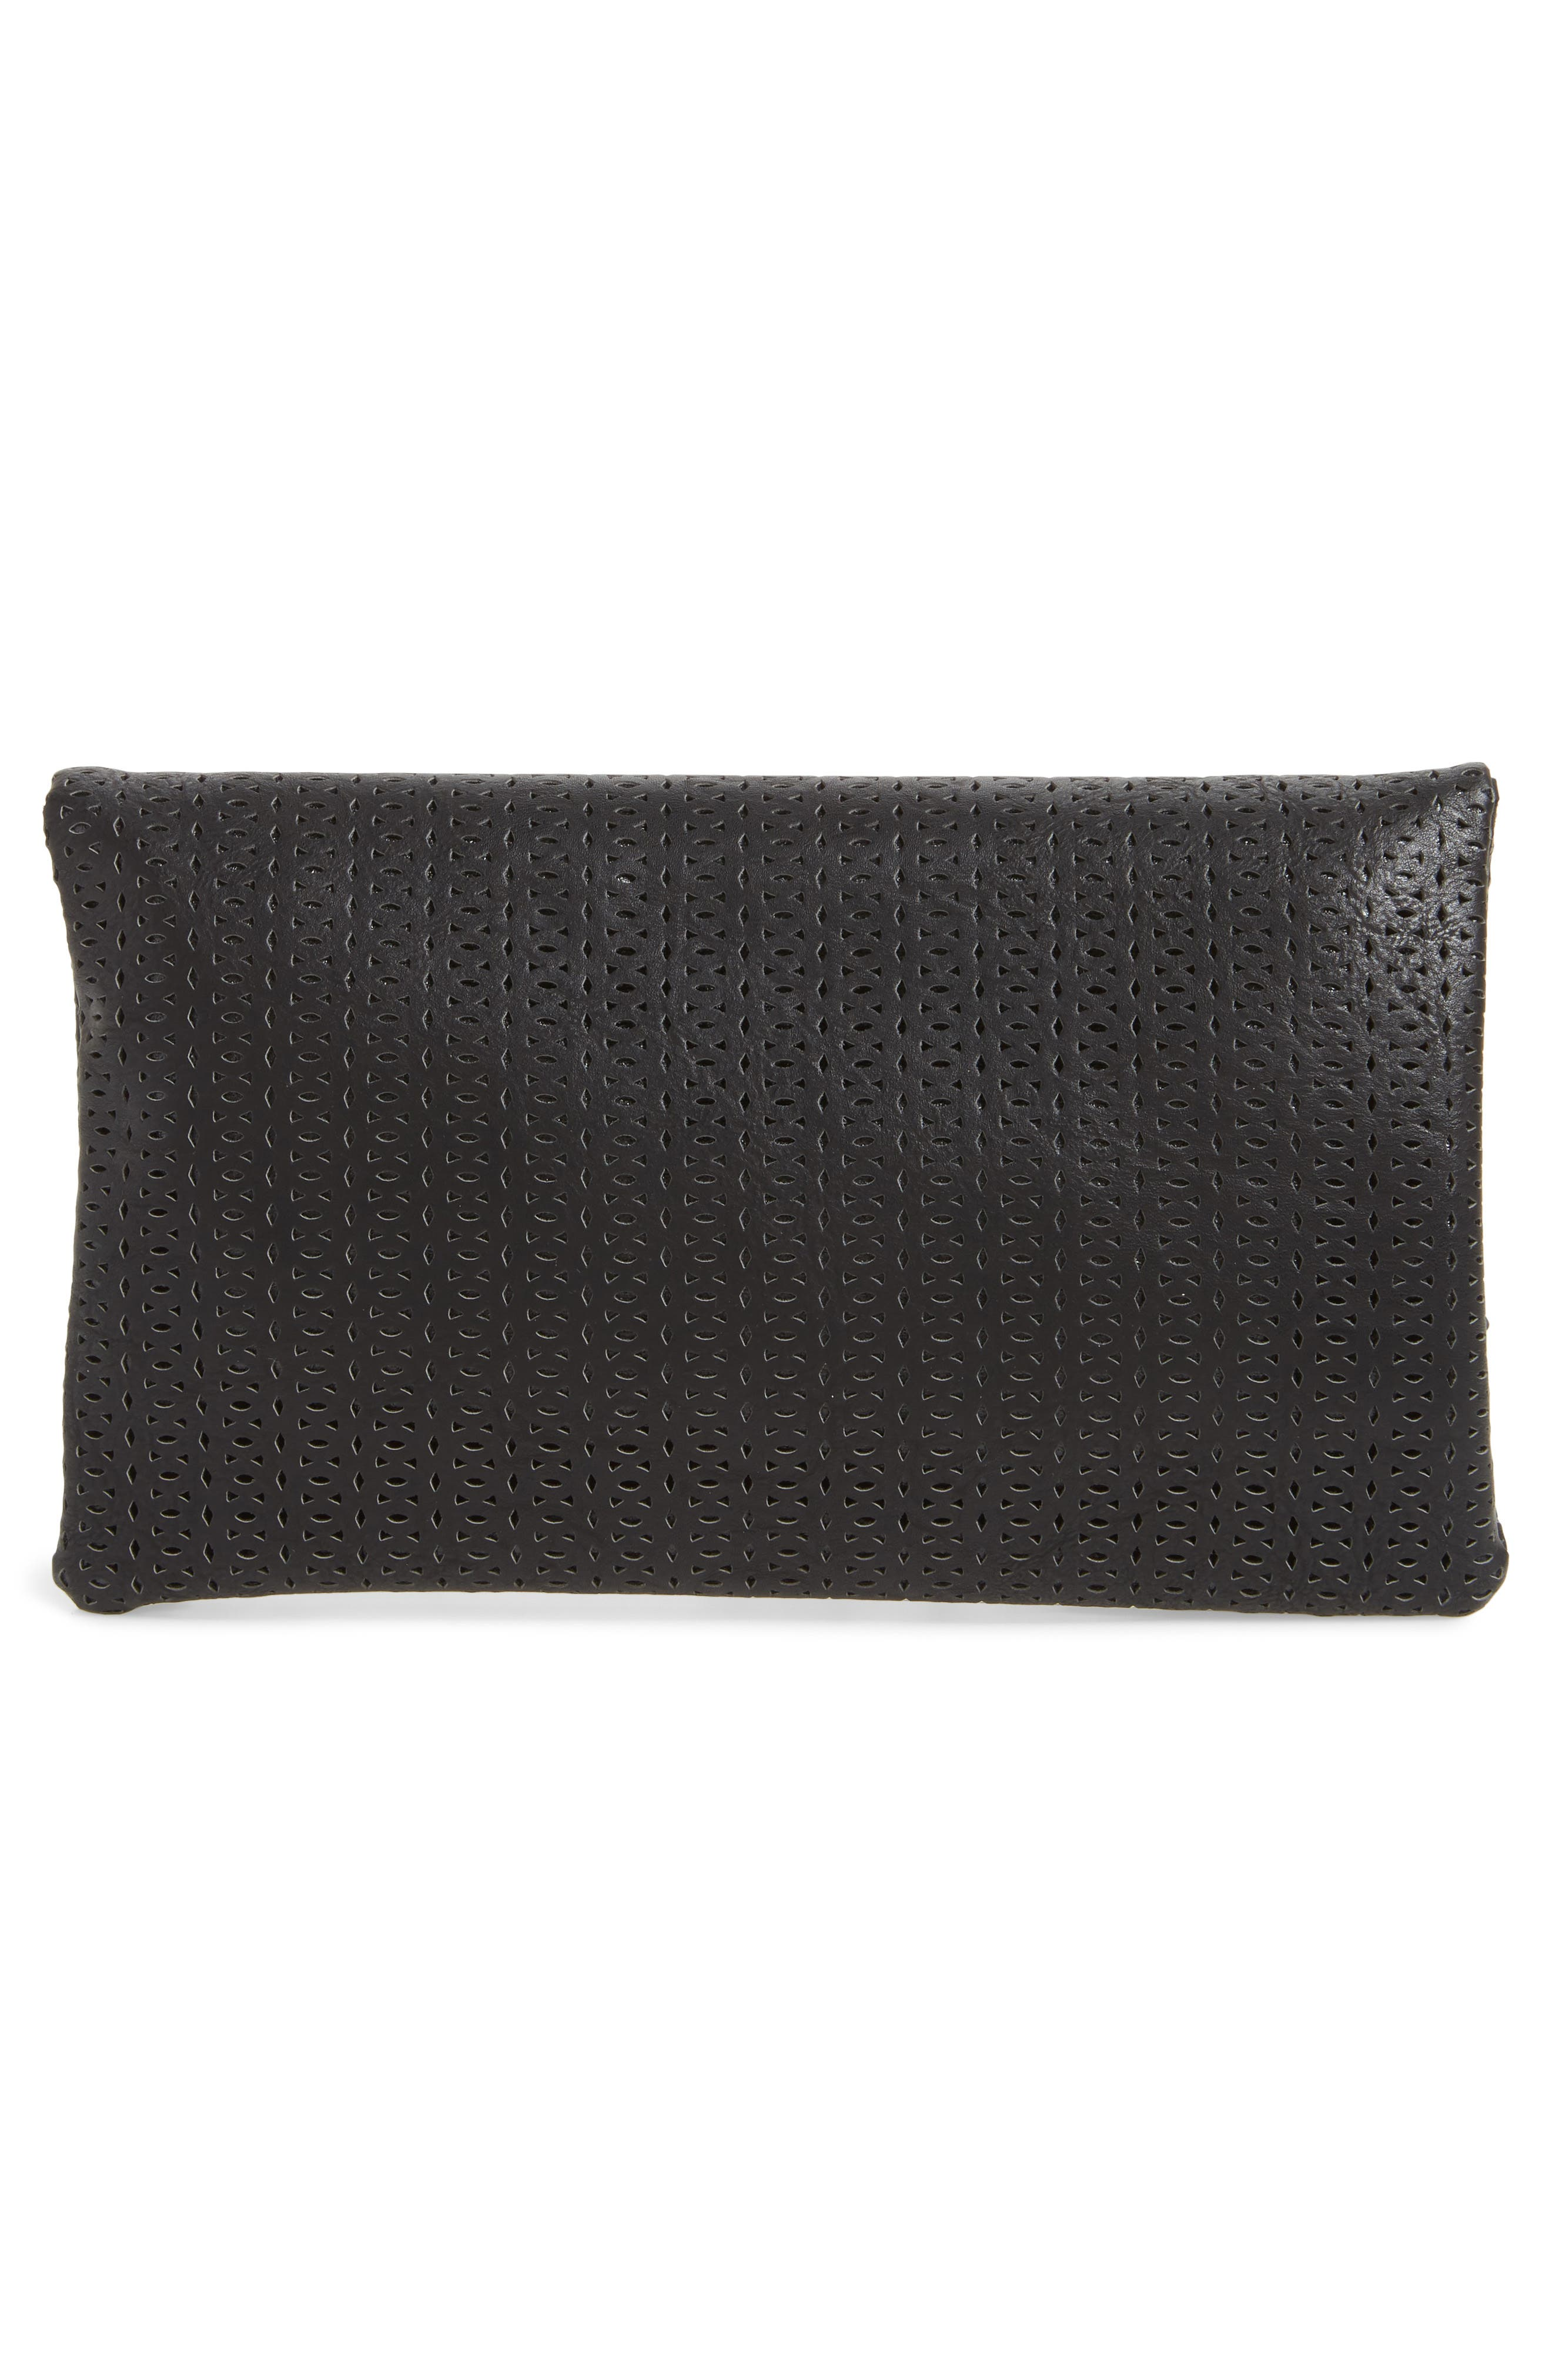 Perforated Fold Over Clutch,                             Alternate thumbnail 2, color,                             Black